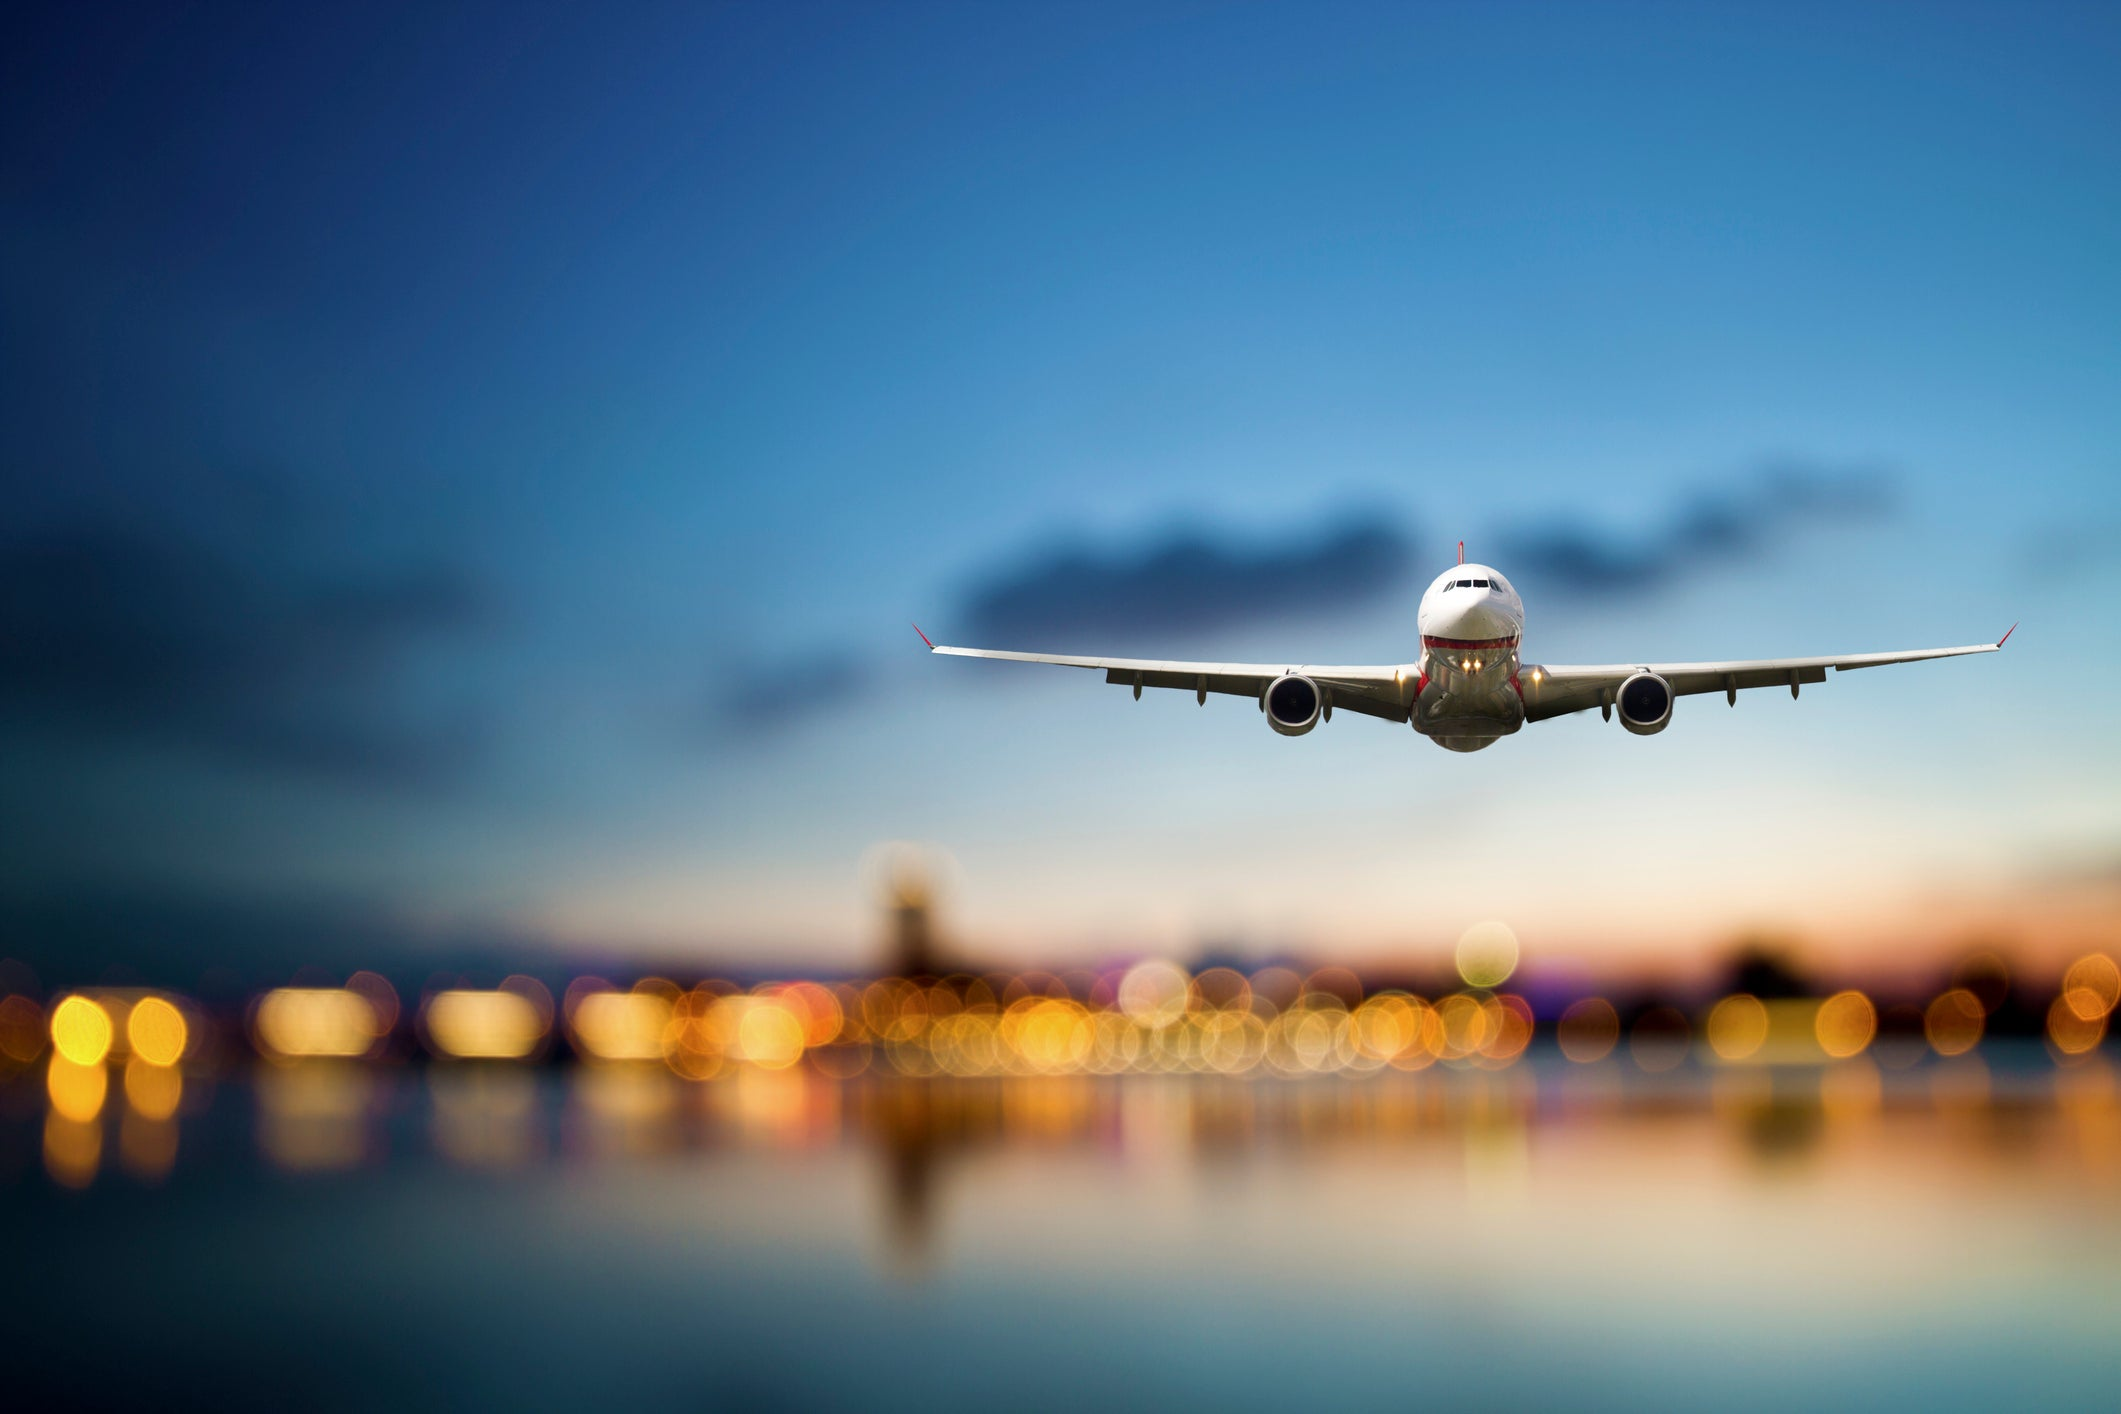 Commercial aircraft in flight with cityscape background